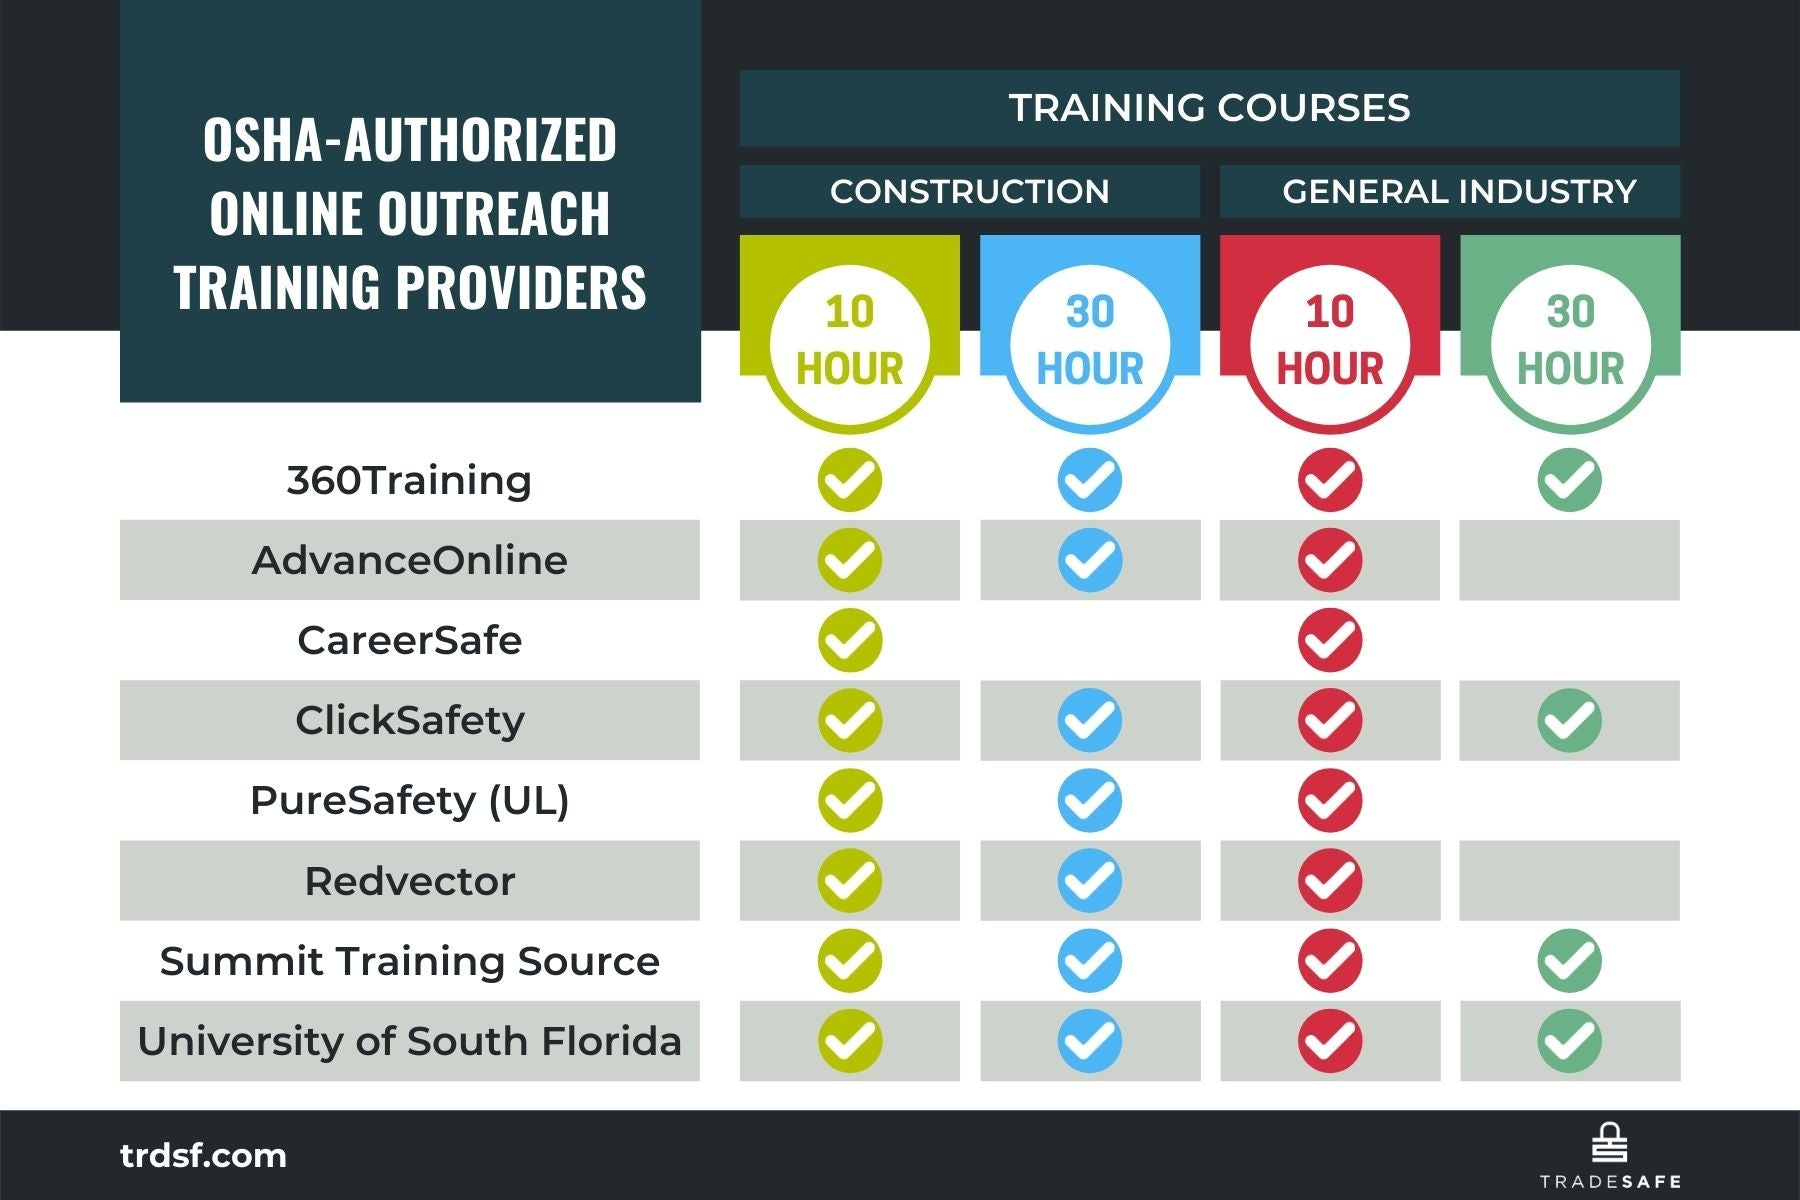 infographic, osha online outreach training program providers, online 10 hour and 30 hour courses